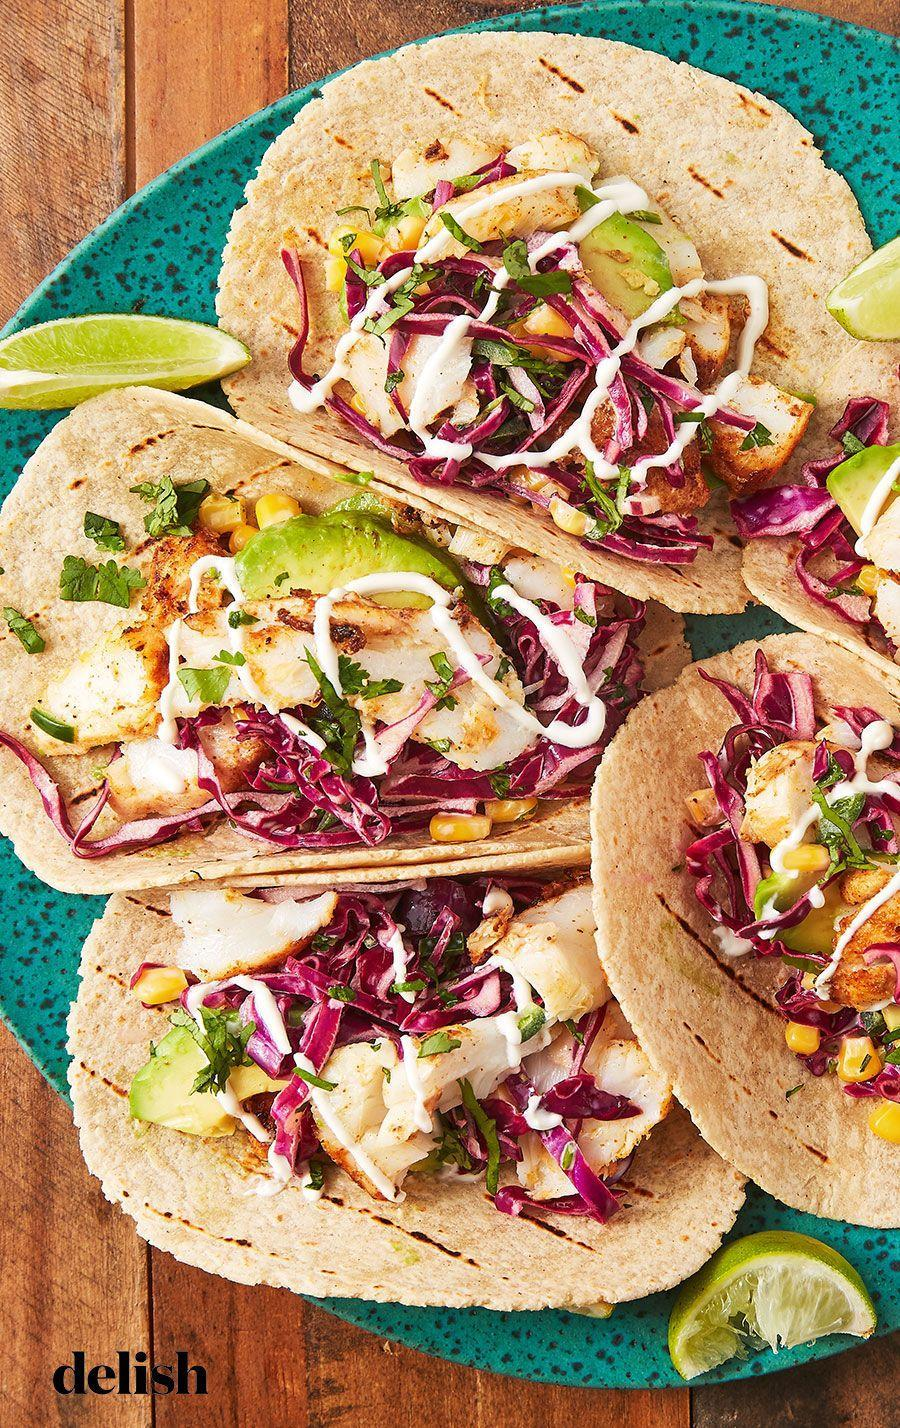 "<p>These will transport you straight to southern California.</p><p>Get the recipe from <a href=""https://patty-delish.hearstapps.com/cooking/recipe-ideas/recipes/a53296/easy-fish-taco-recipe/"" rel=""nofollow noopener"" target=""_blank"" data-ylk=""slk:Delish"" class=""link rapid-noclick-resp"">Delish</a>.</p>"